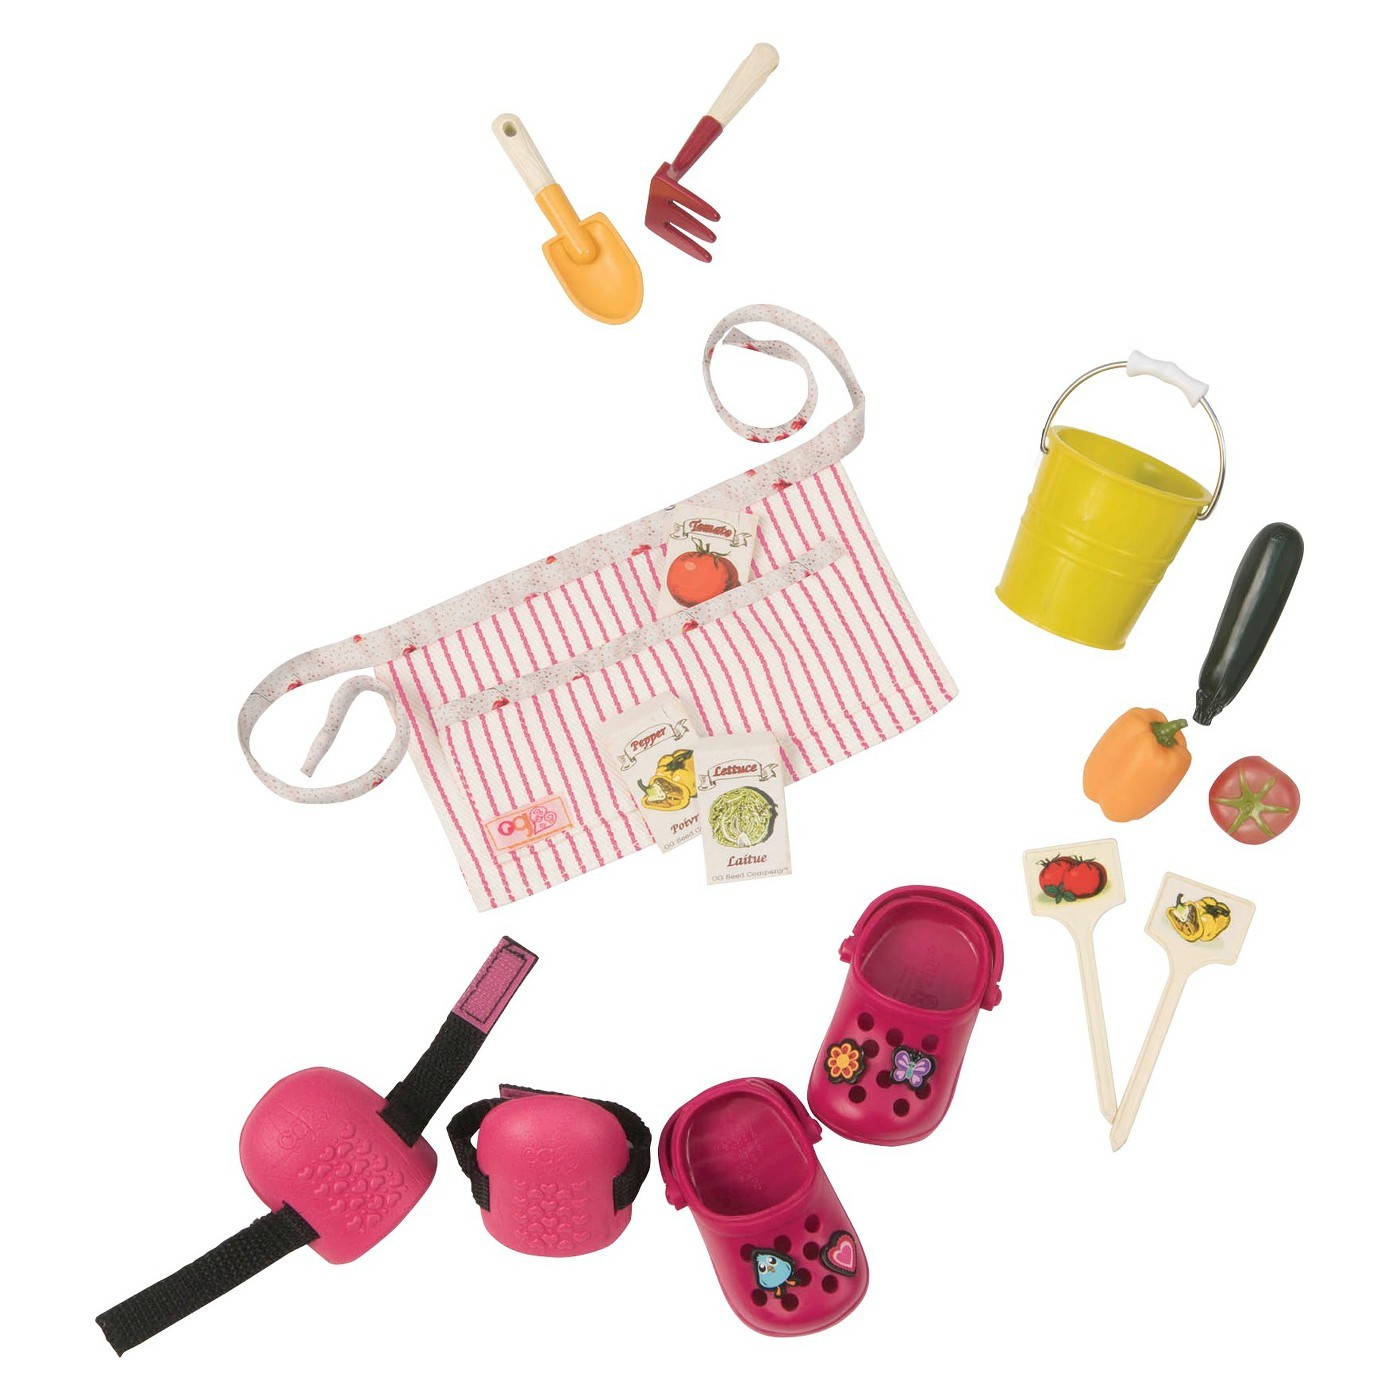 Our Generation: Read & Play Set - Nahla's Gardening Outfit image